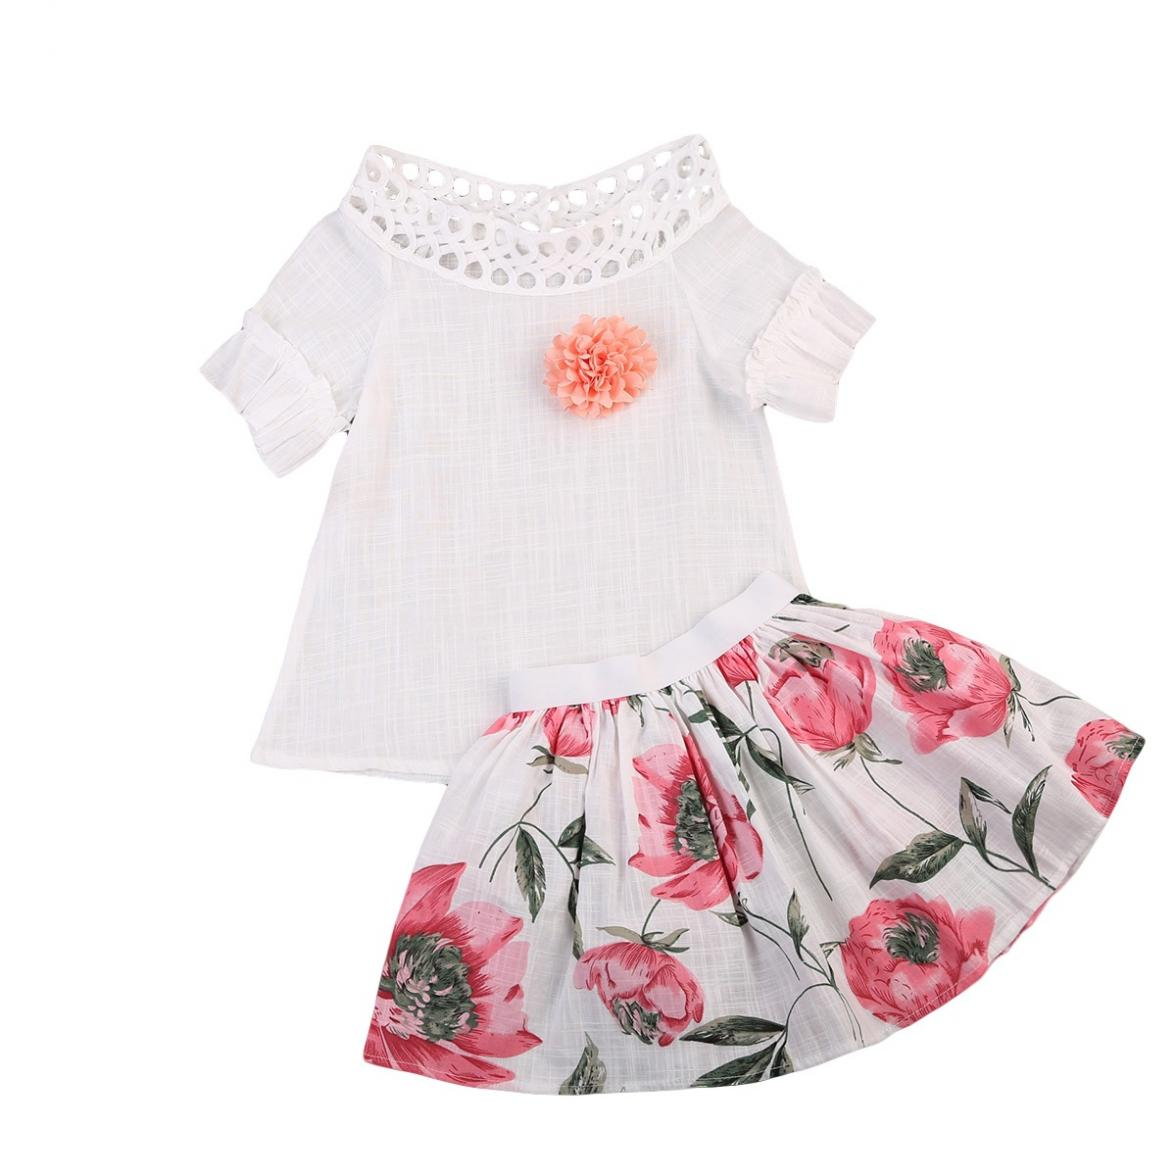 2PCS Lovely Toddler Kids Baby Girls Clothes Casual Summer Short Sleeve O-Neck Top+Skirt Dress Outfits Set3-7Years Helen115